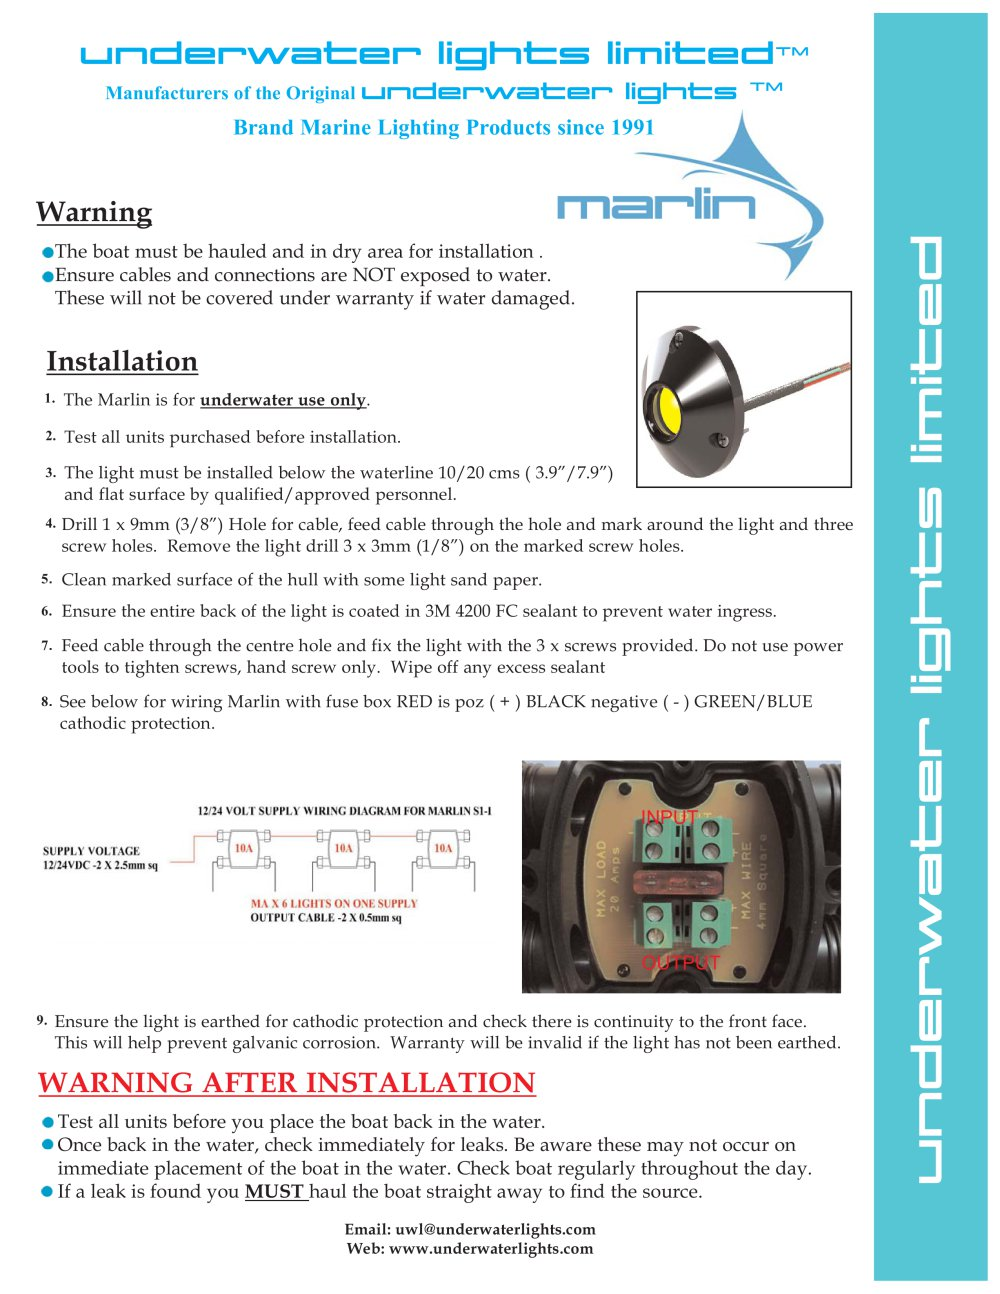 Marlin Surface Mount Led Underwater Lights Limited Pdf Cathodic Protection Wiring Diagram 1 2 Pages